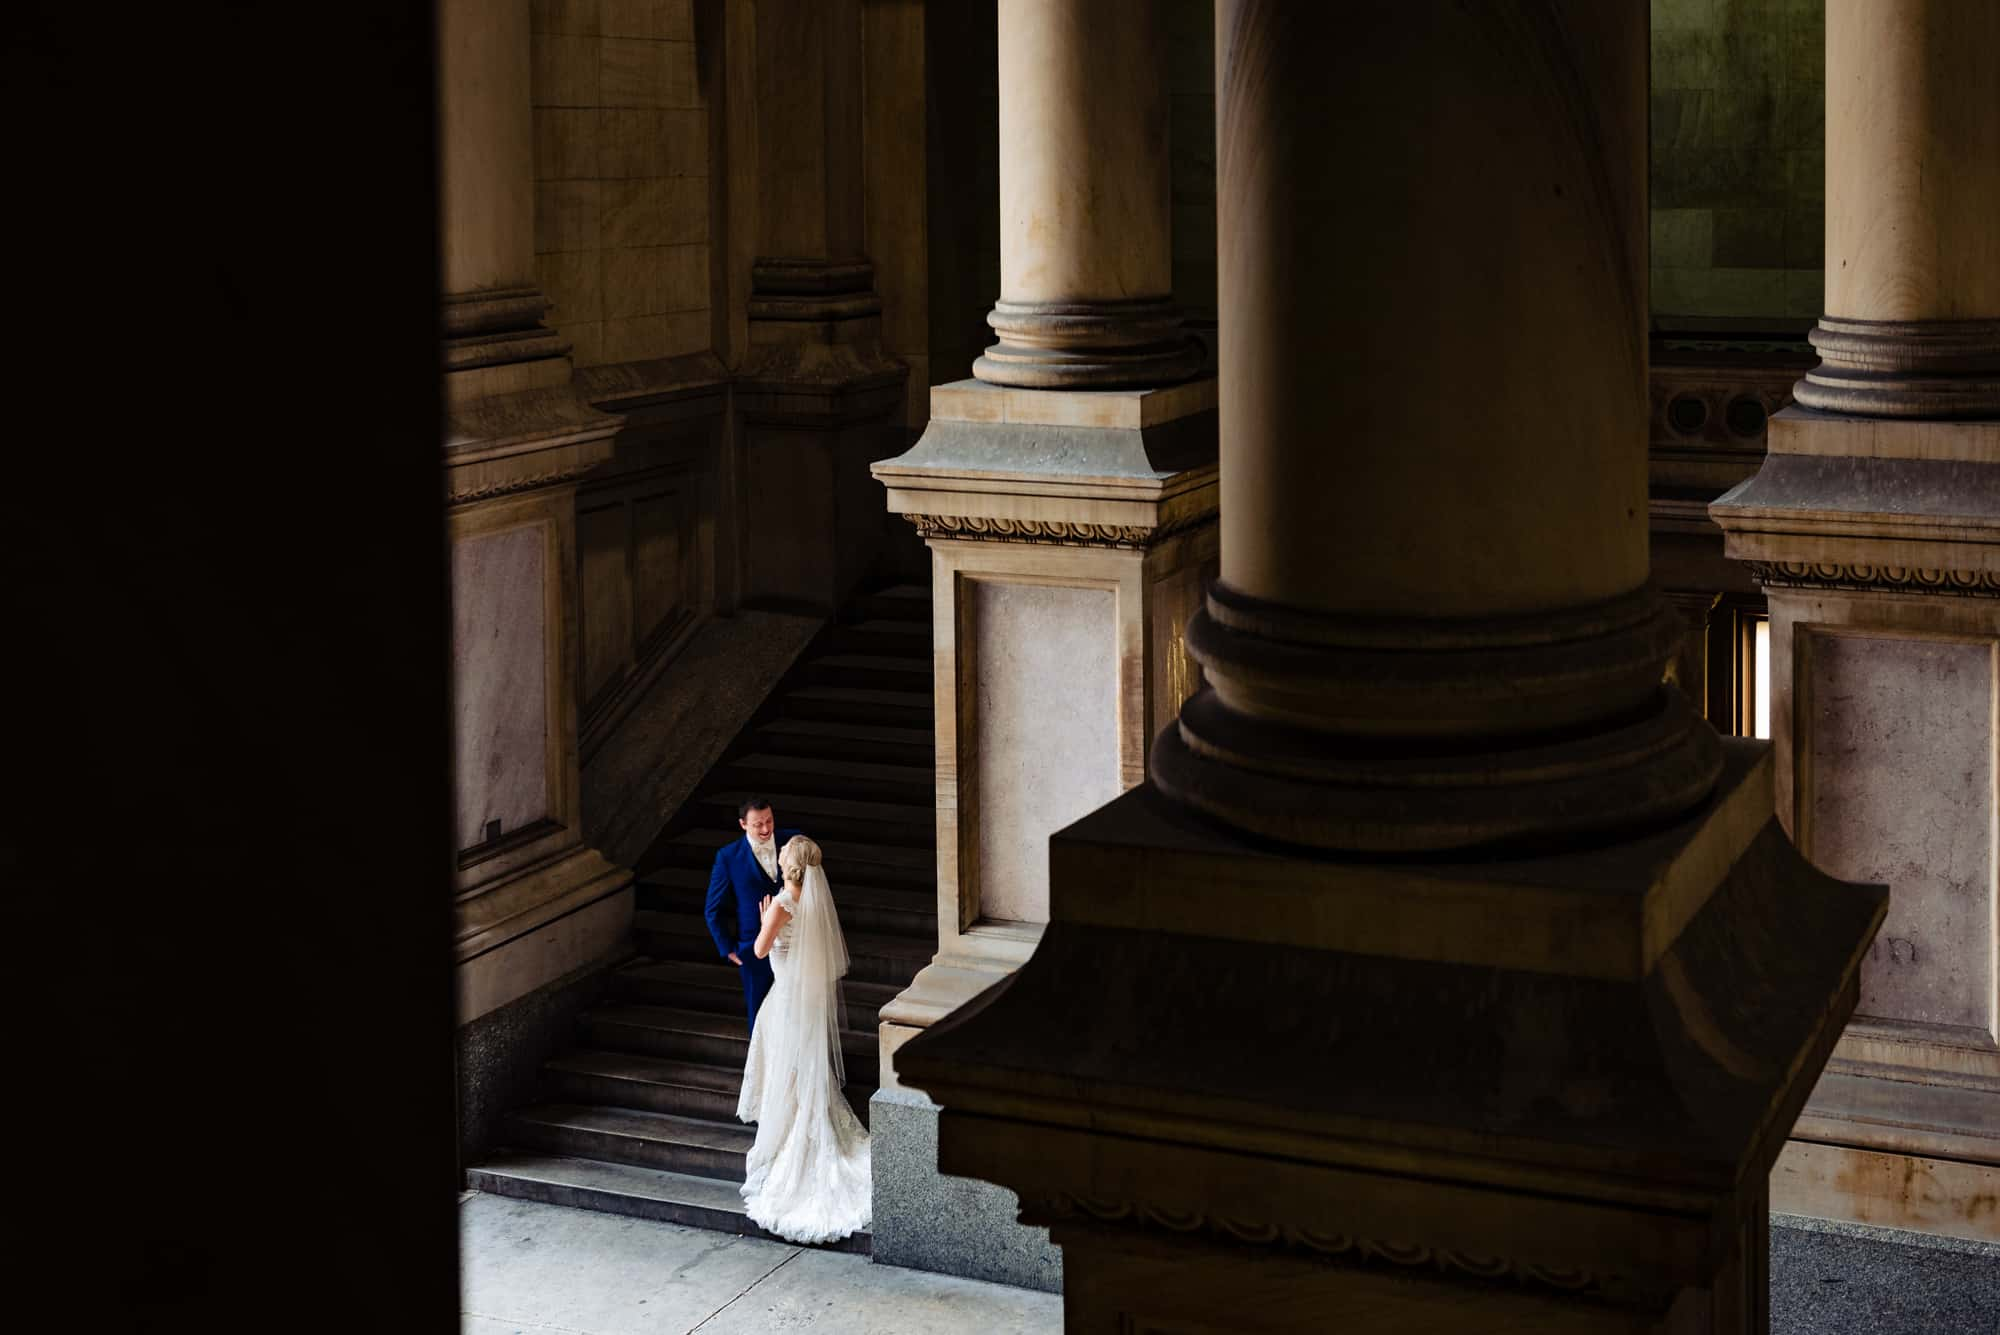 wedding day, far away shot of bride and groom in staircase talking to each other